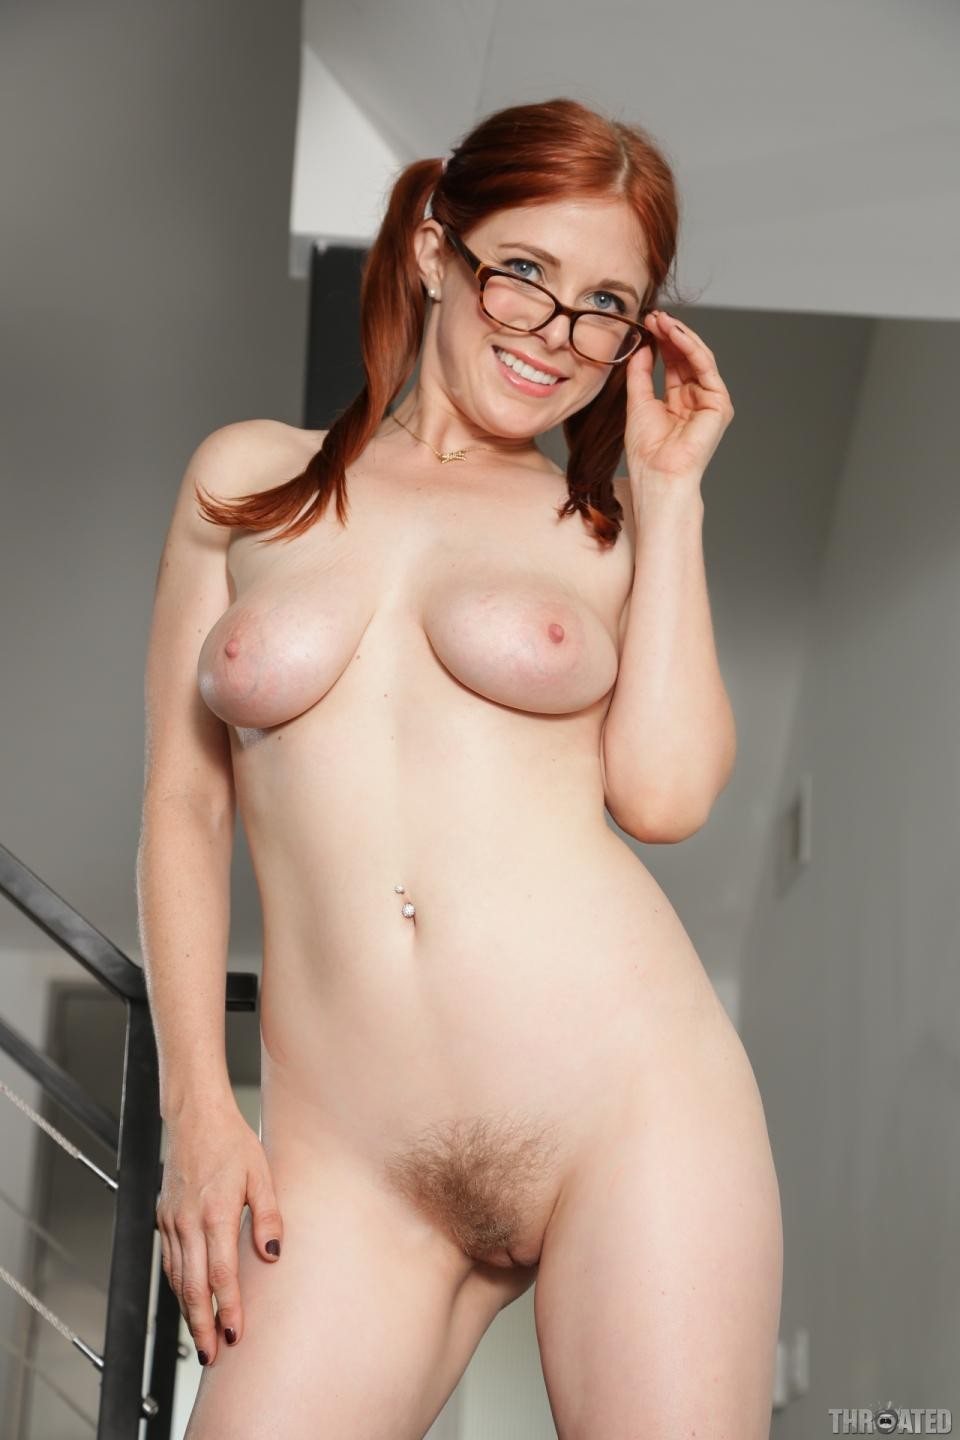 Penny pax nude pics